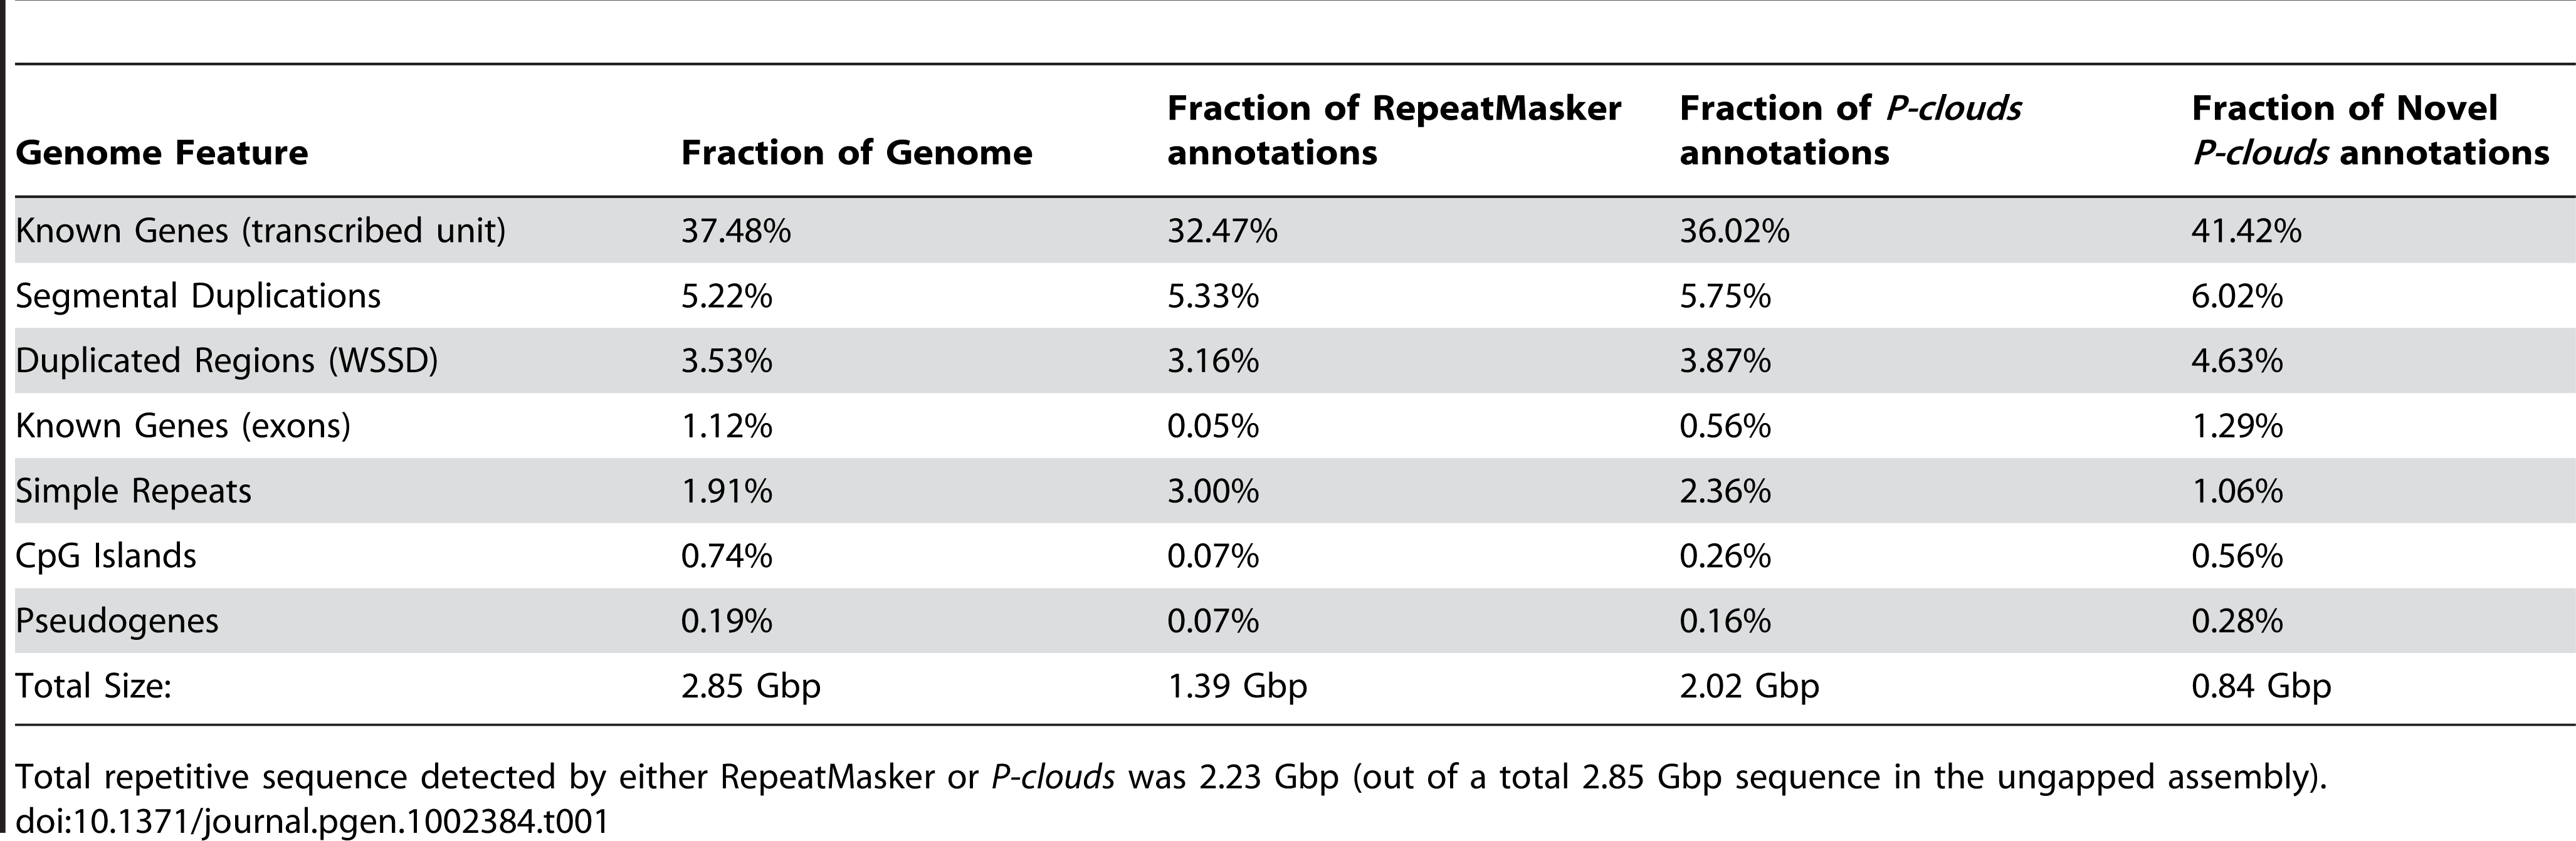 Overlap between genome features and repetitive regions.